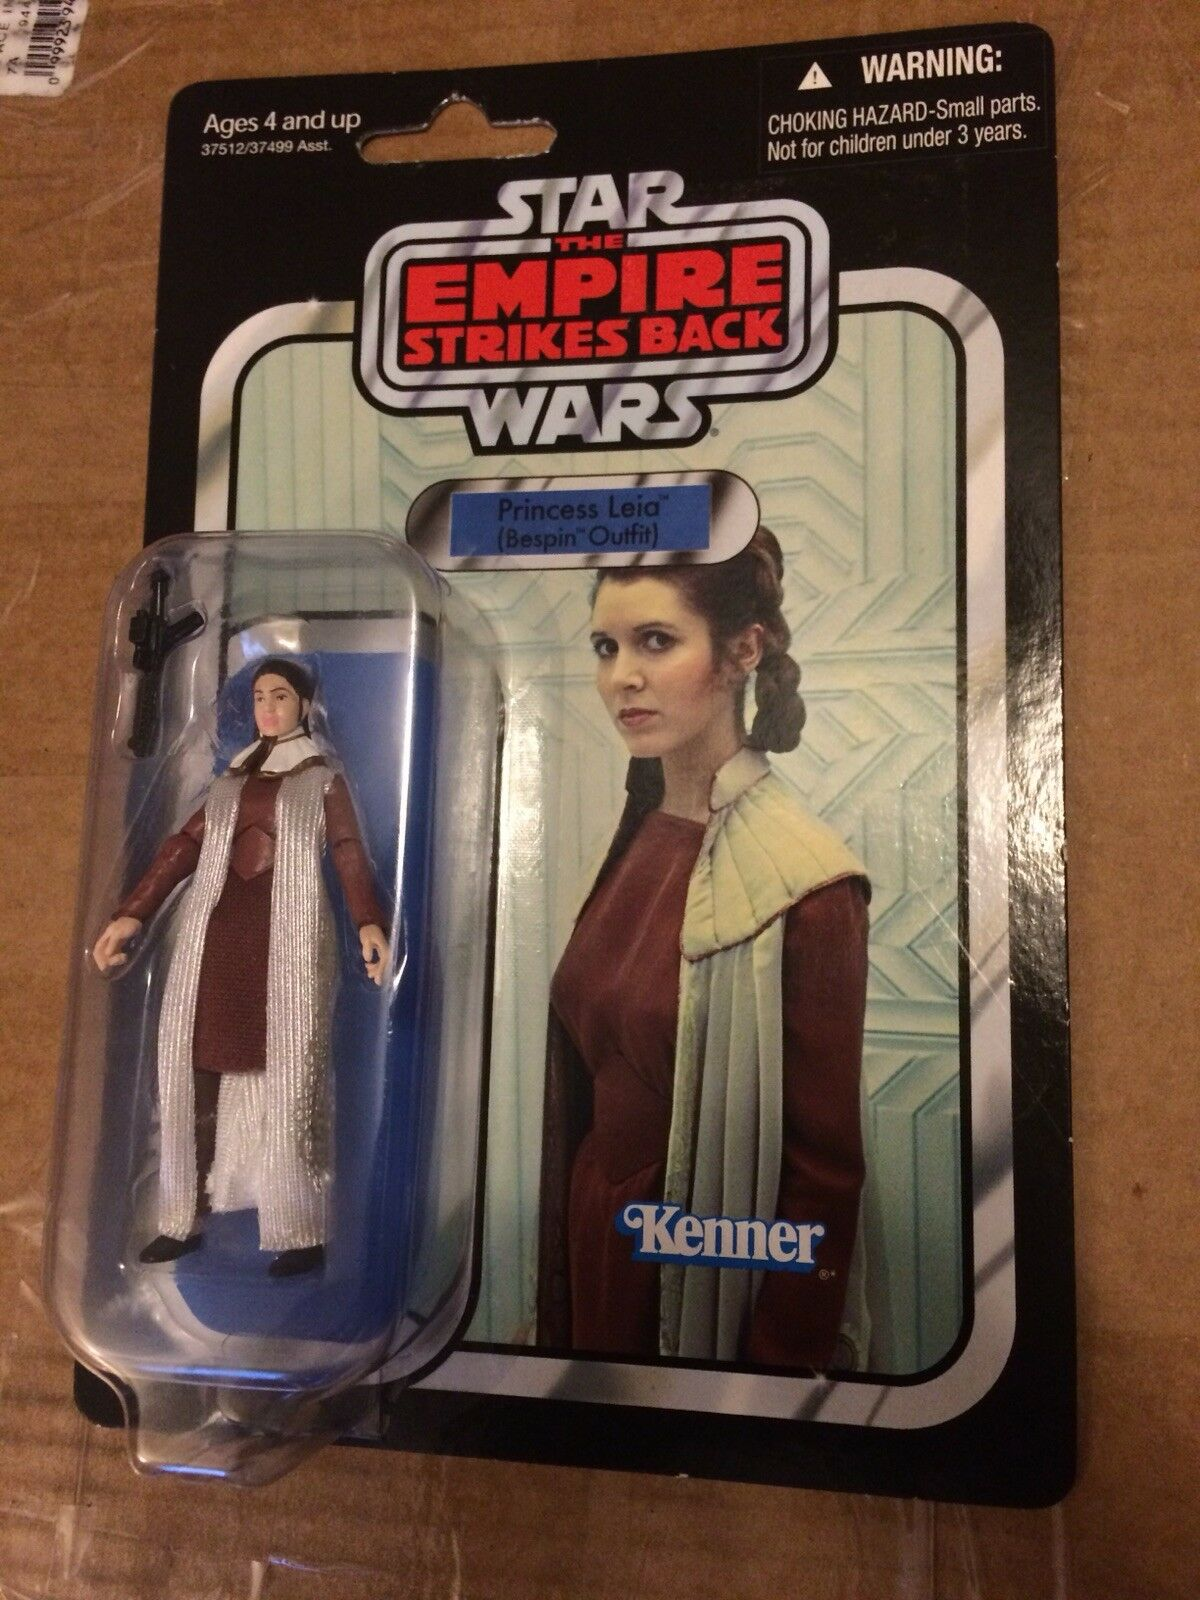 Prinzessin leia bespin outfit 2012 star - wars - vintage - kollektion vc111 moc